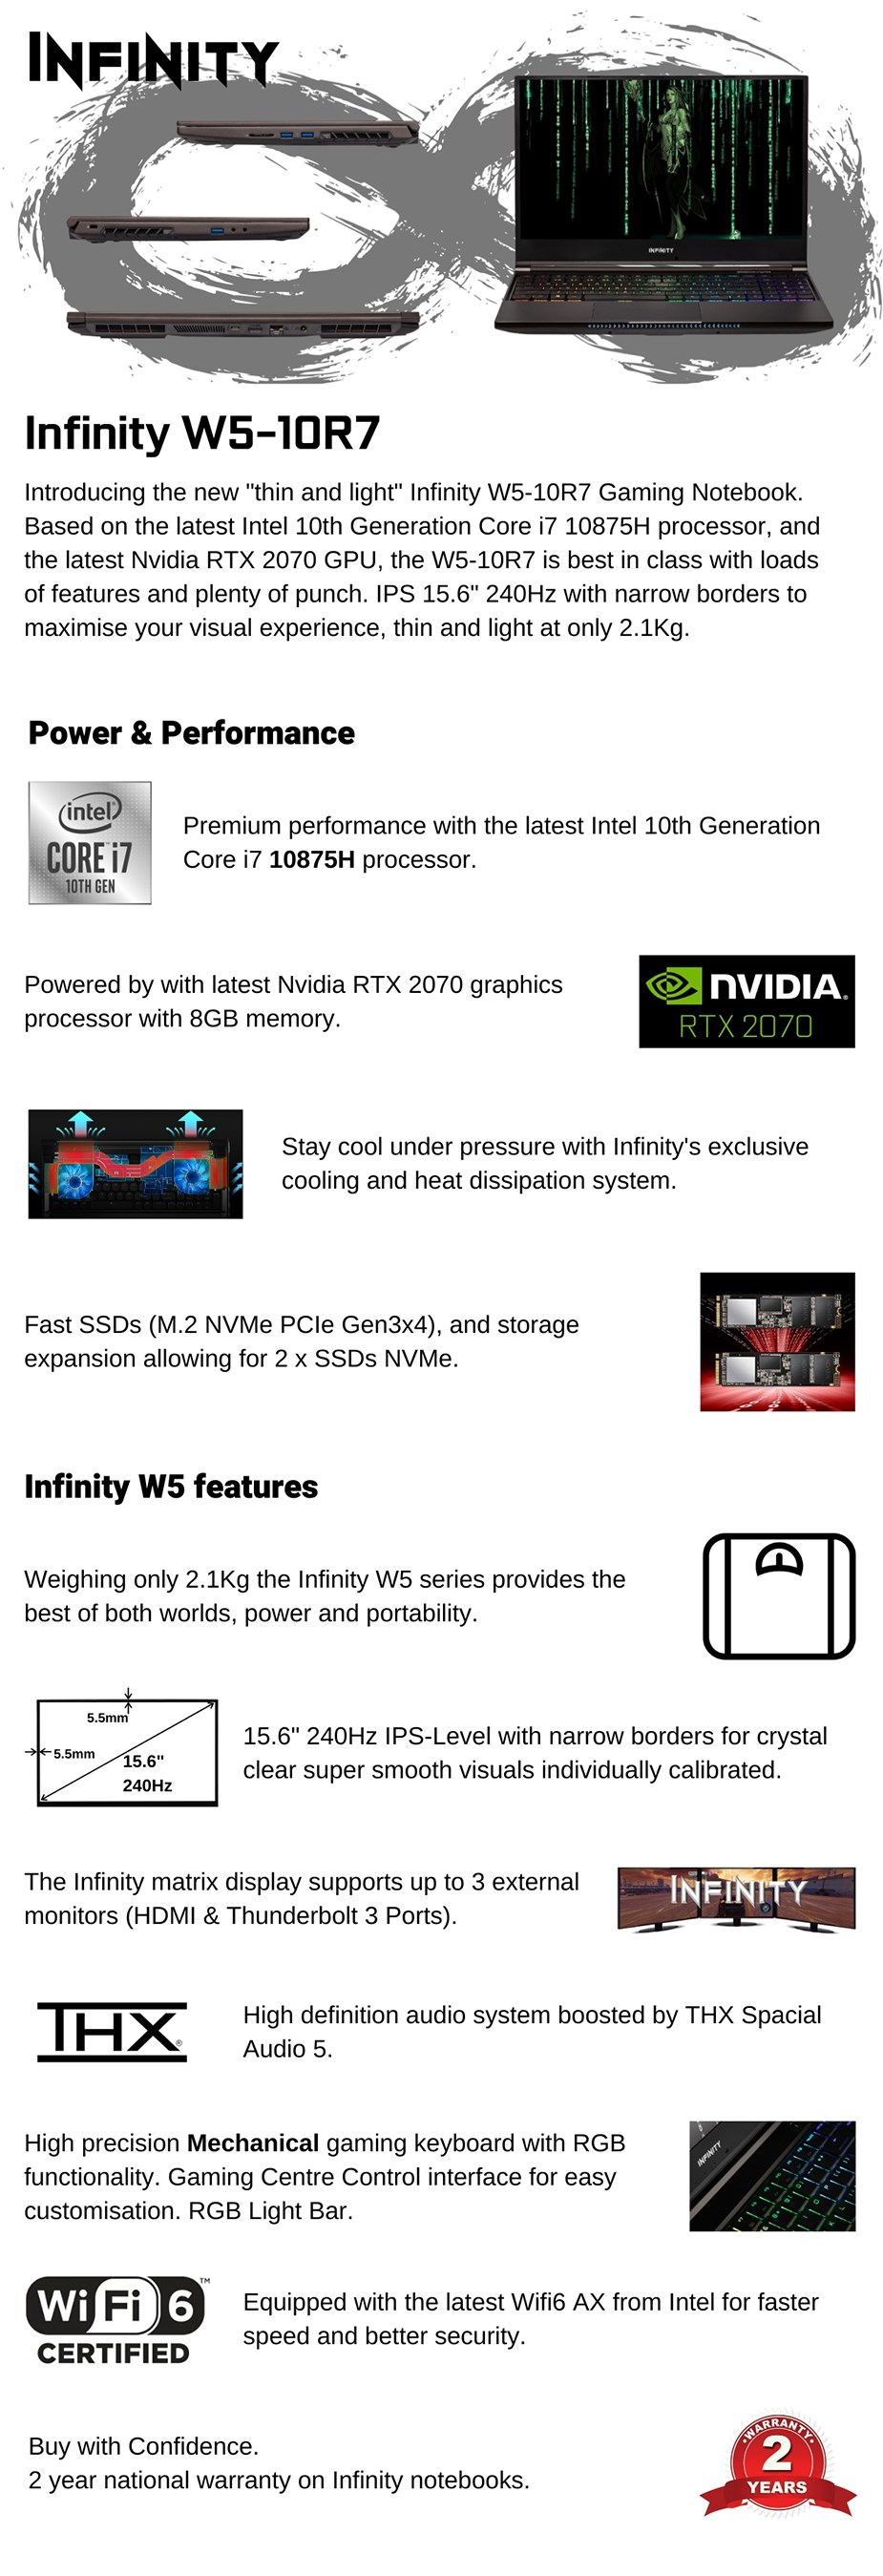 "Infinity W5-10R7-899 15.6"" 240Hz Gaming Laptop i7-10875H 16GB 1TB 2070 W10H - Overview 1"